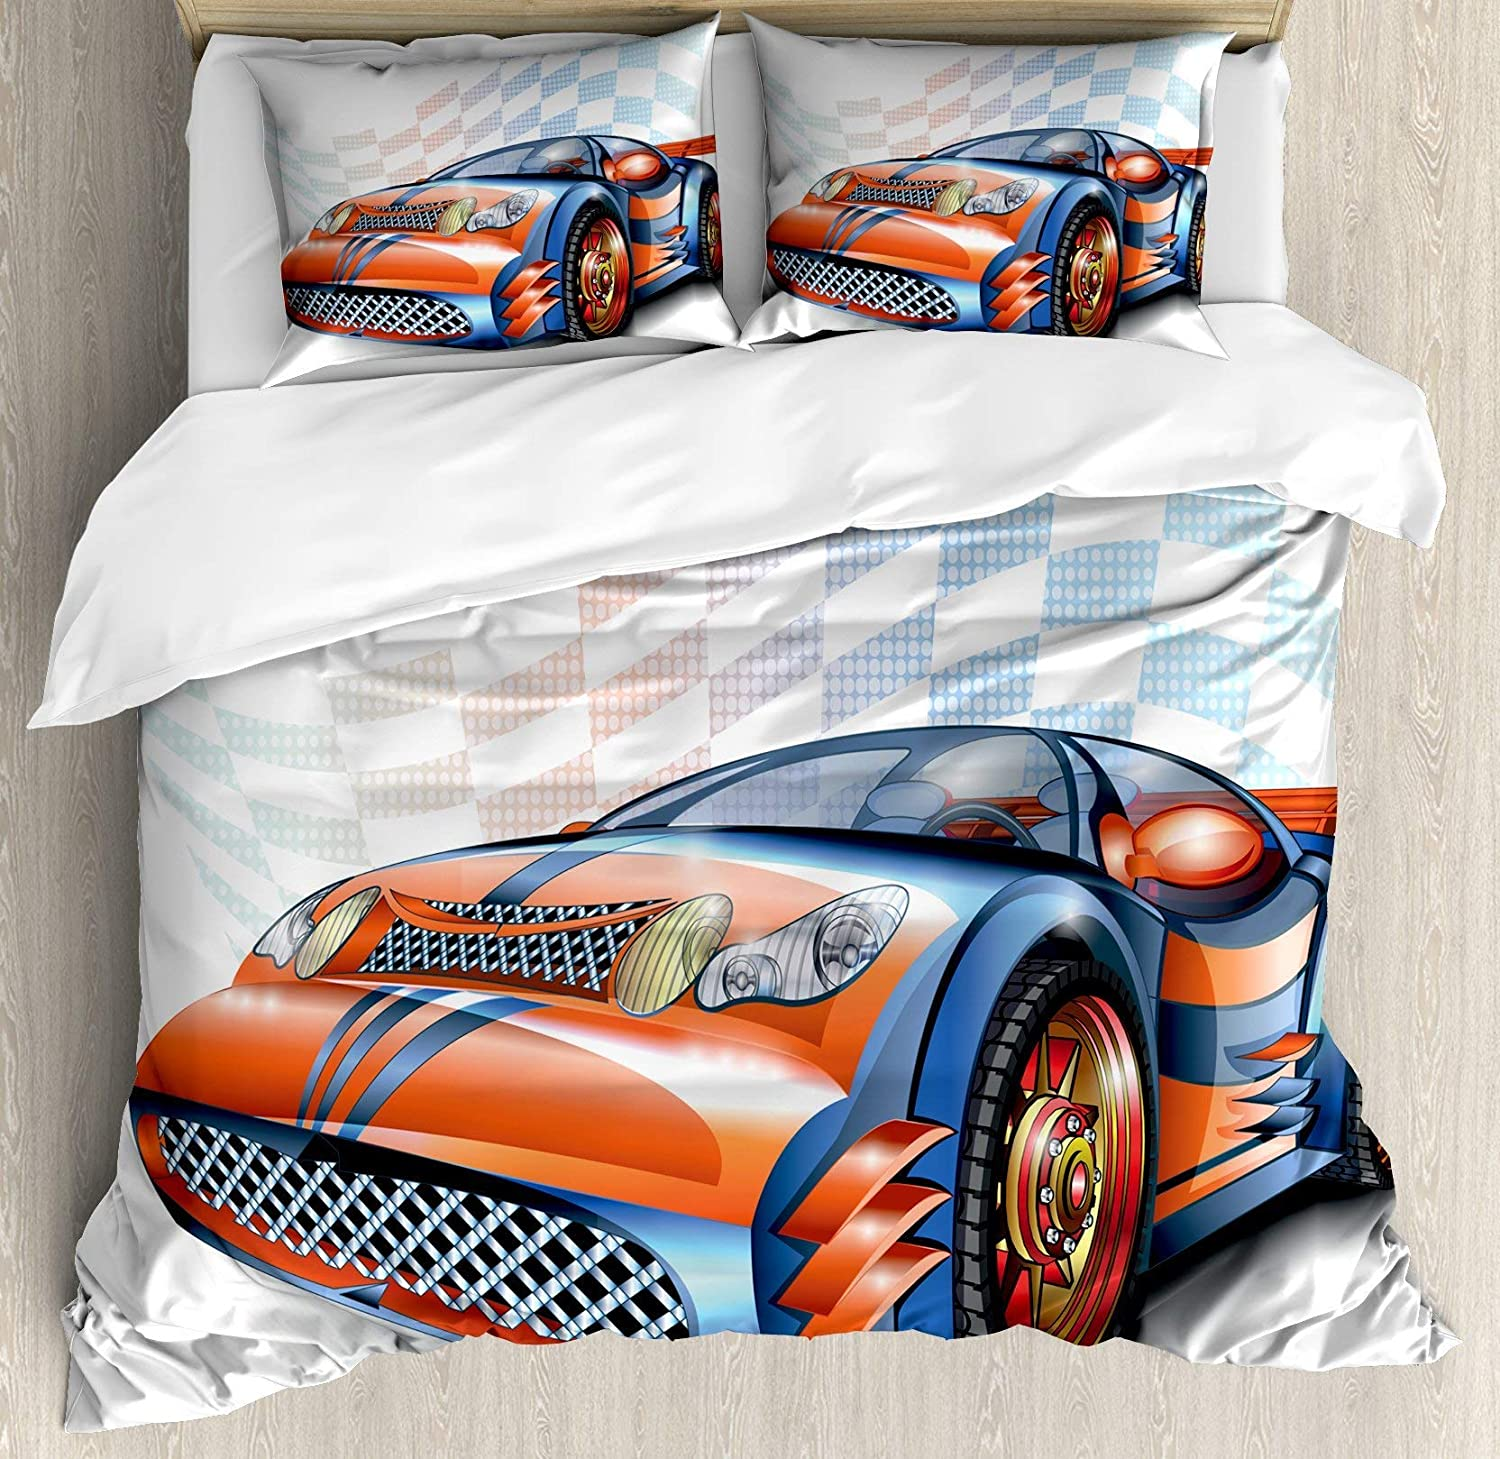 Cars 4pc Bedding Set Full Size, Cartoon Style Speeding Racing Car Event Championship Racetrack Victory Drive Floral Lightweight Microfiber Duvet Cover Set, orange bluee Black